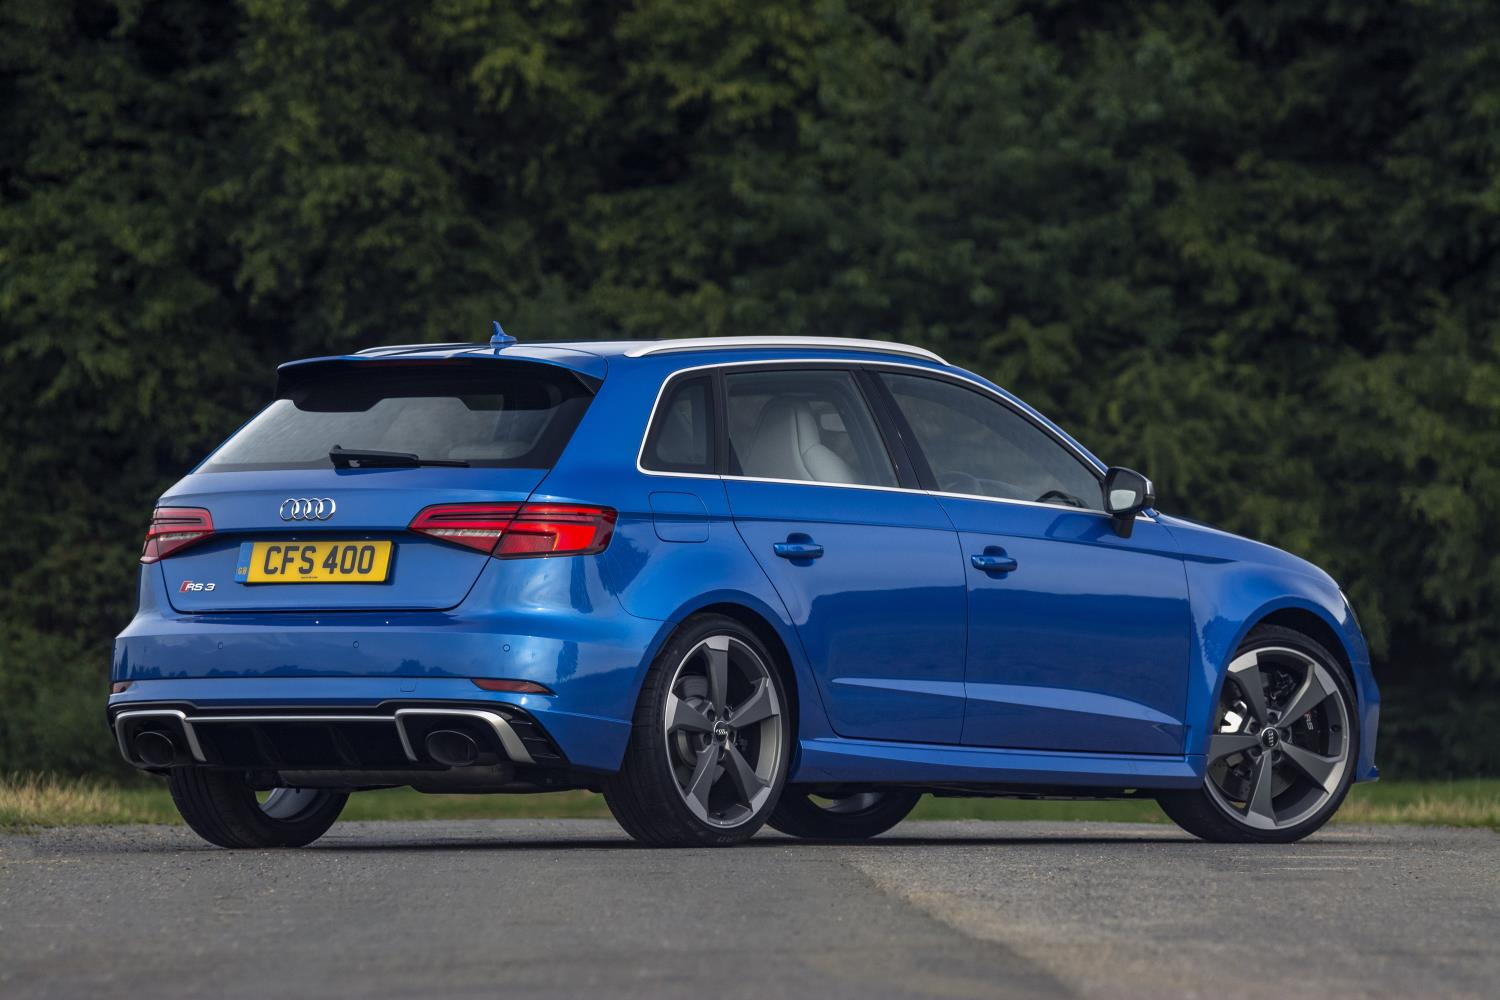 Audi RS3 rear view in blue